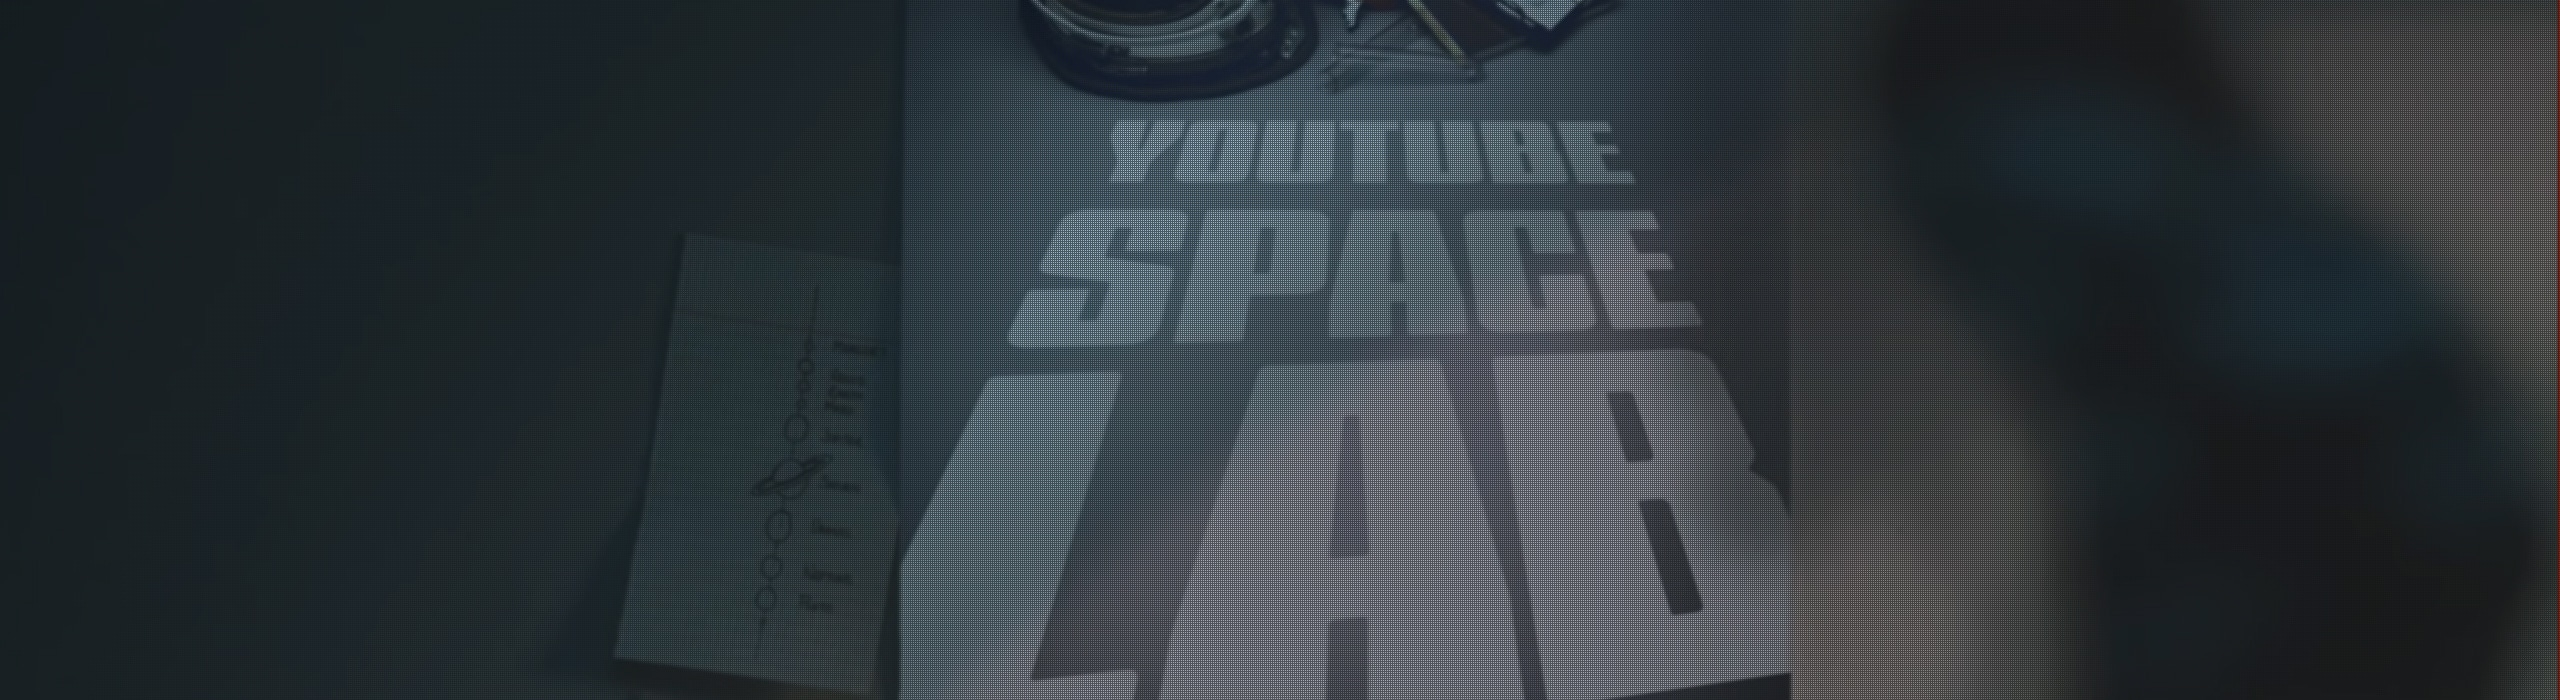 YouTube Space Lab - natie-youtube-space-lab-animation-01 - Natie Branding Agency